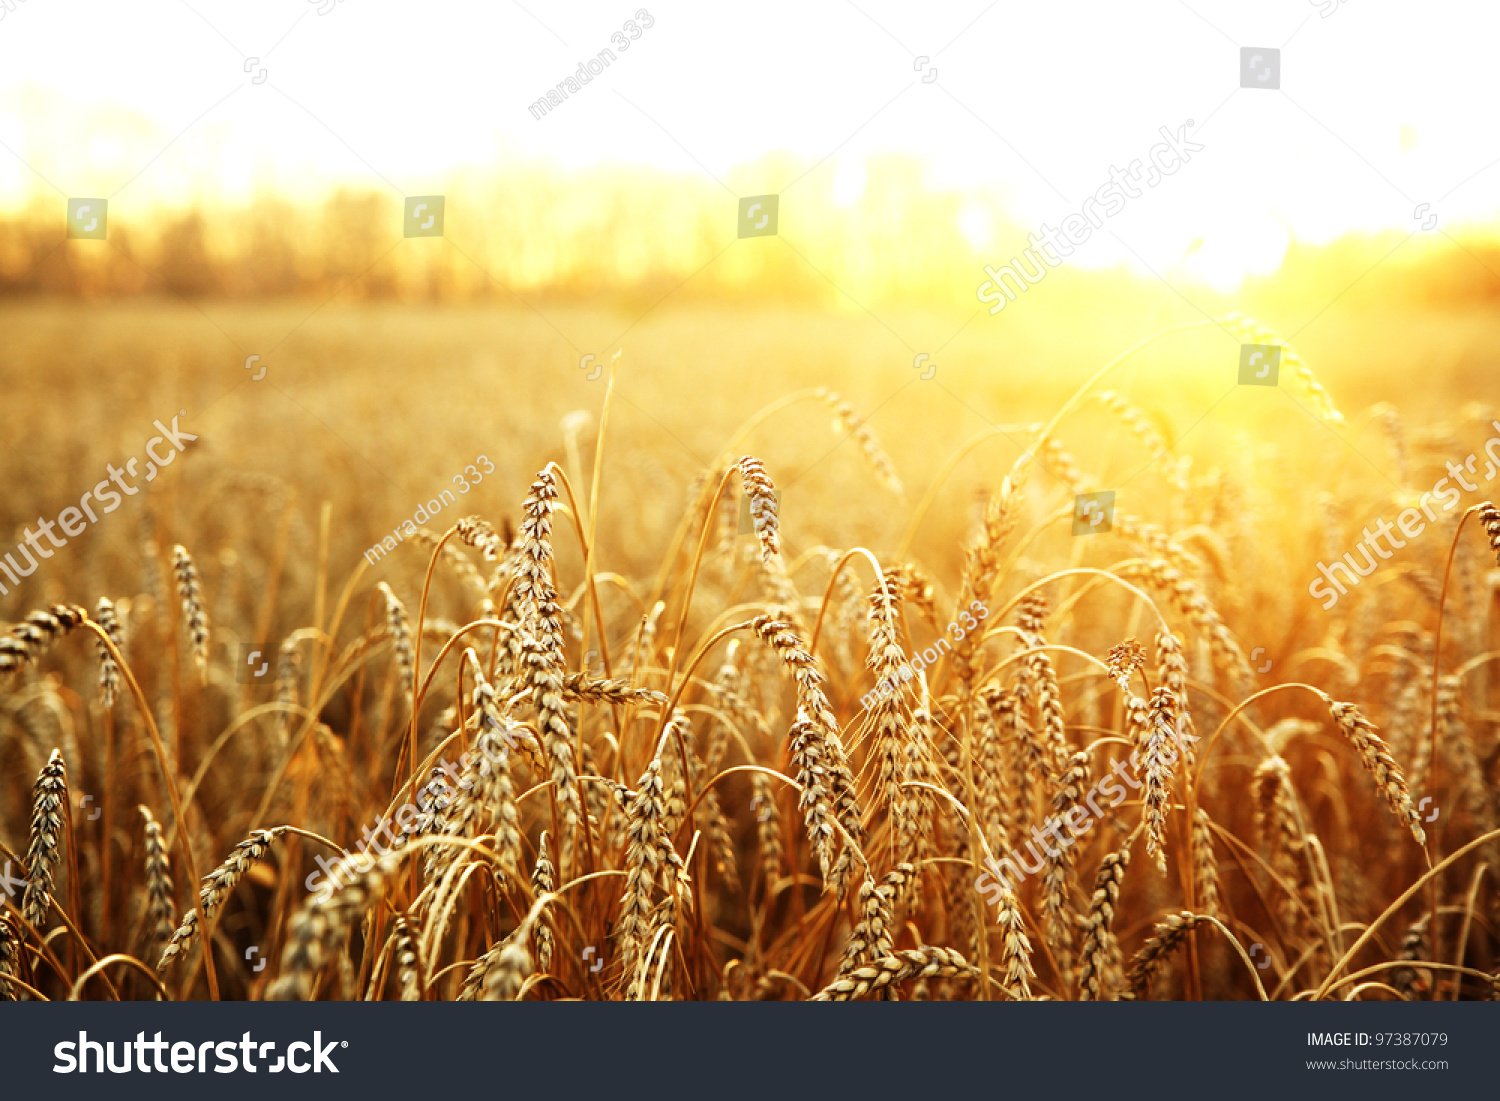 backdrop of ripening ears of yellow wheat field on the sunset cloudy orange sky background. Copy space of the setting sun rays on horizon in rural meadow Close up nature photo  Idea of a rich harvest #97387079